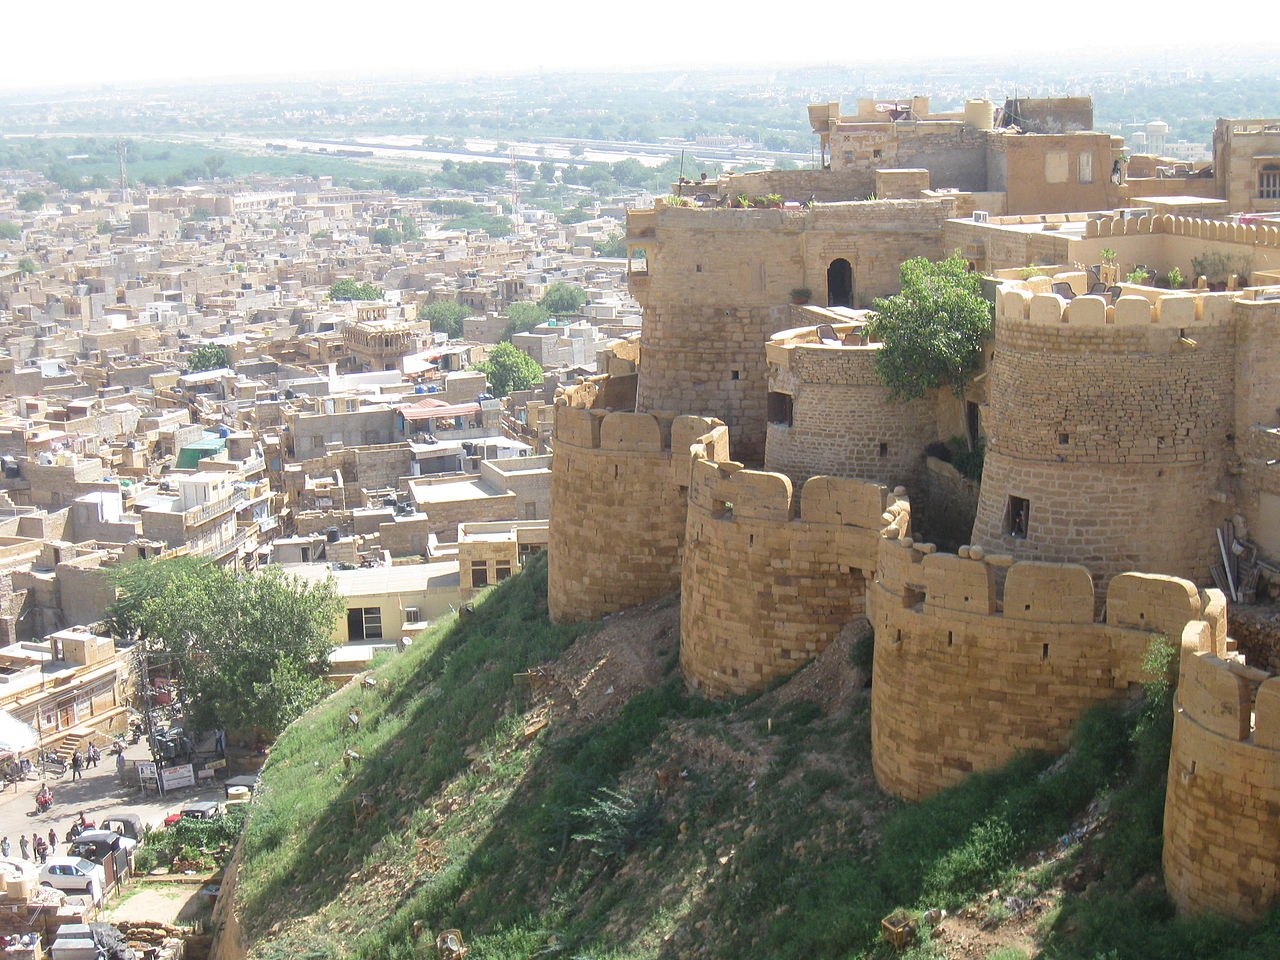 Jaisalmer Fort - Popular Tourist Place to Visit in Jaisalmer, Rajasthan